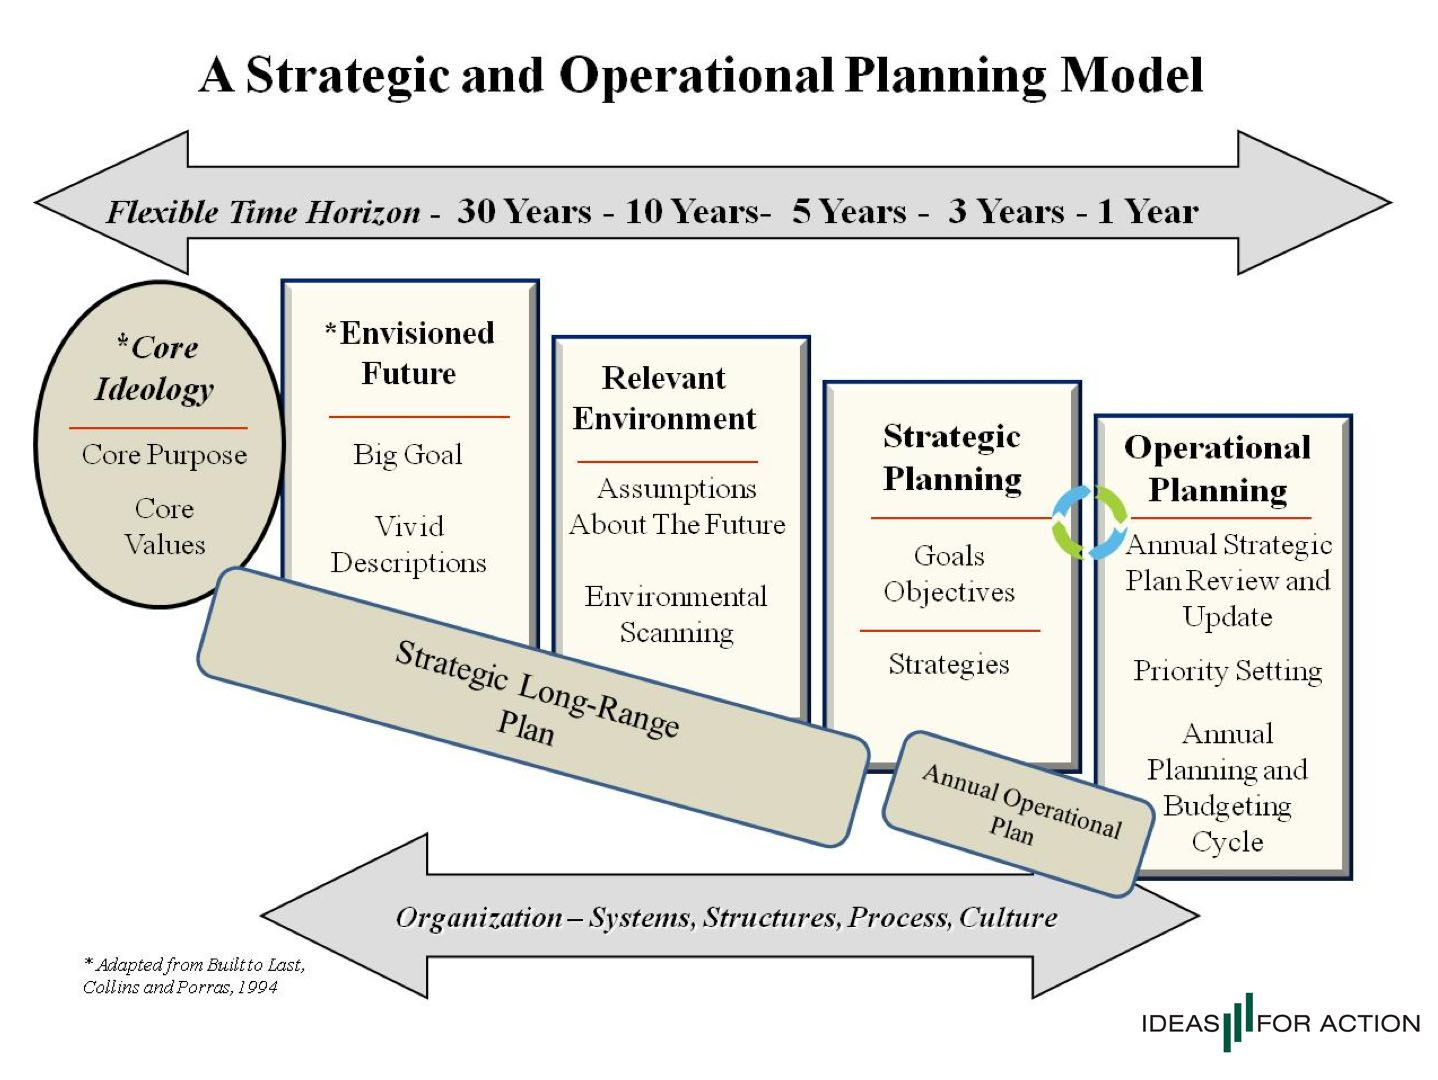 Strategic Planning Models  Google Search  AAnaliza